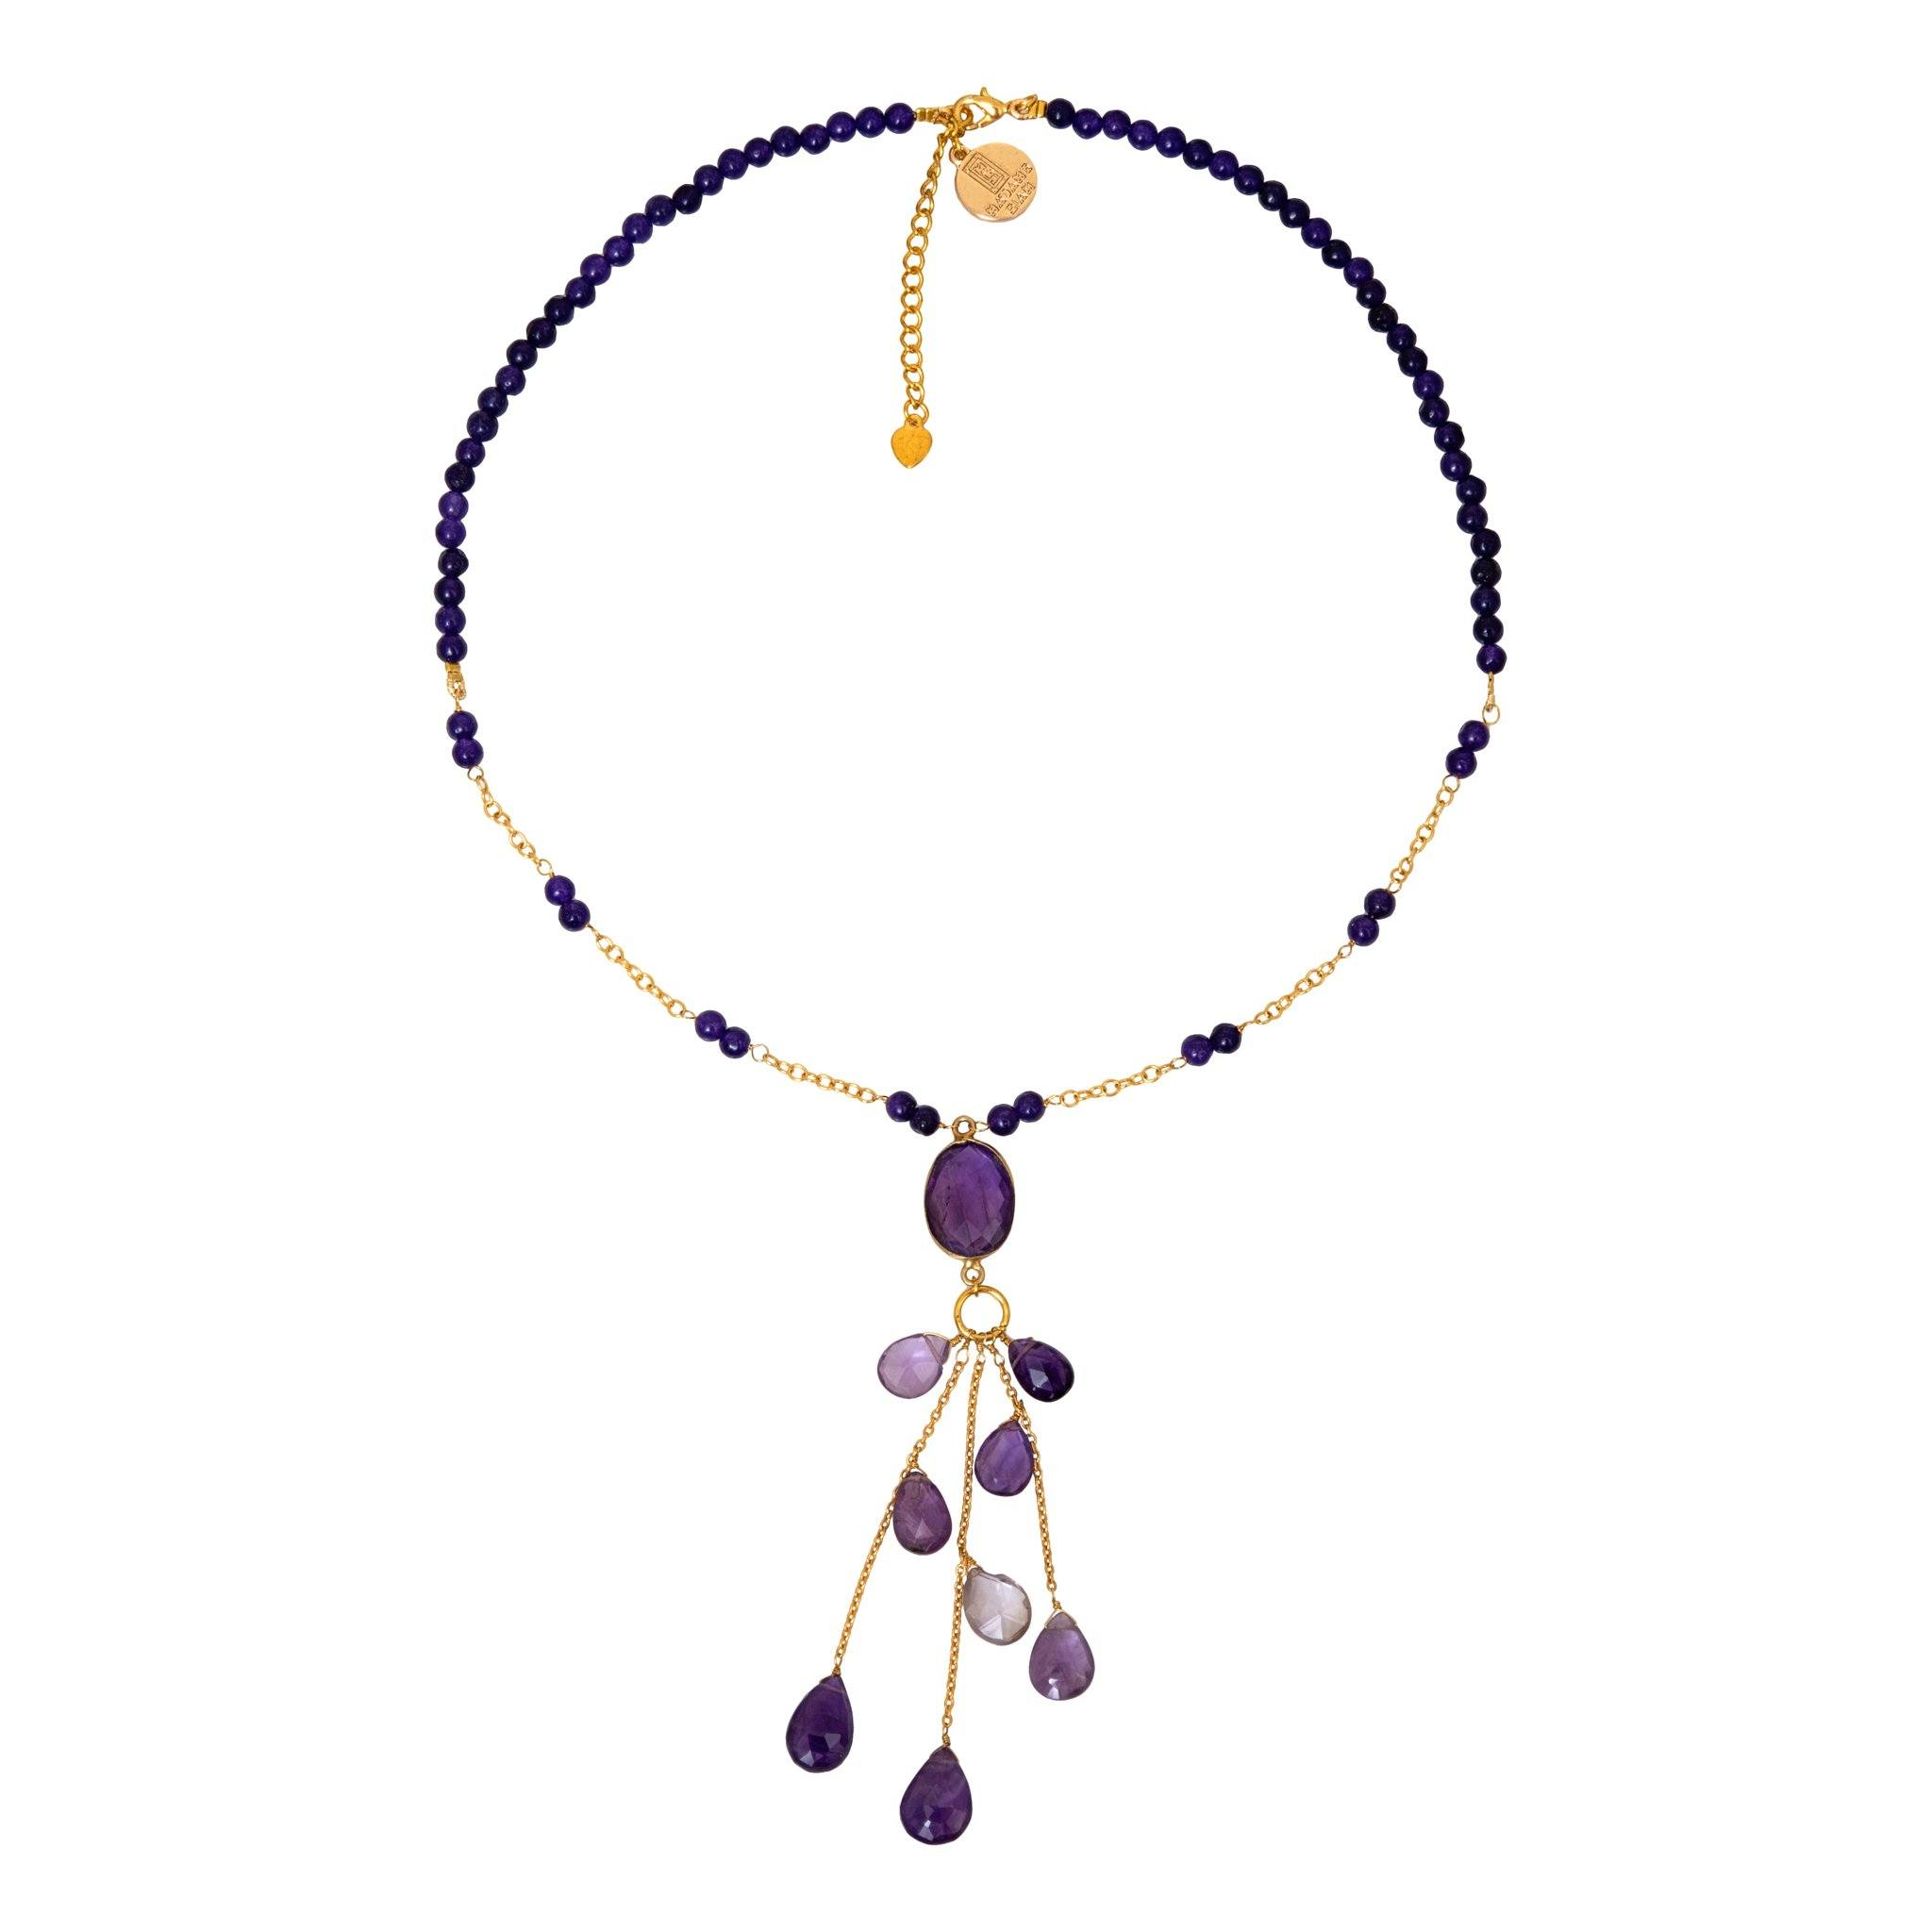 LUZ amethyst chocker with drops - MadamSiam